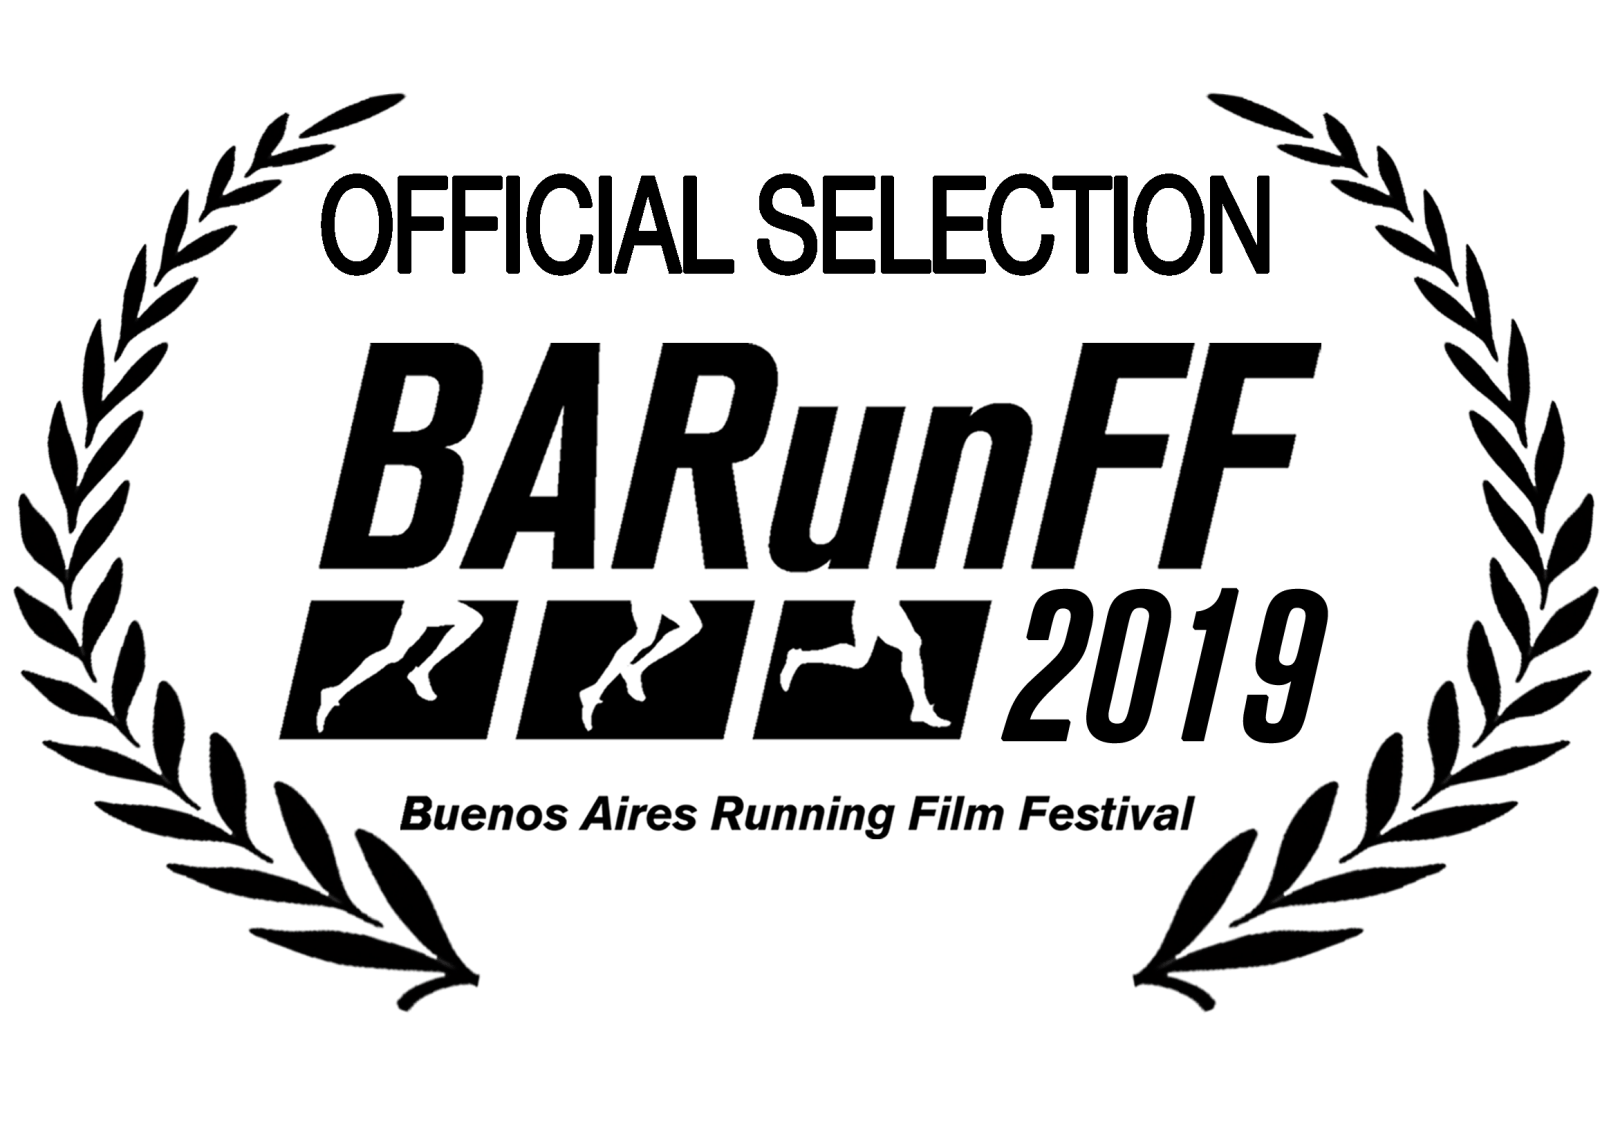 Official Selection - HoryZonty Film Festival 2018